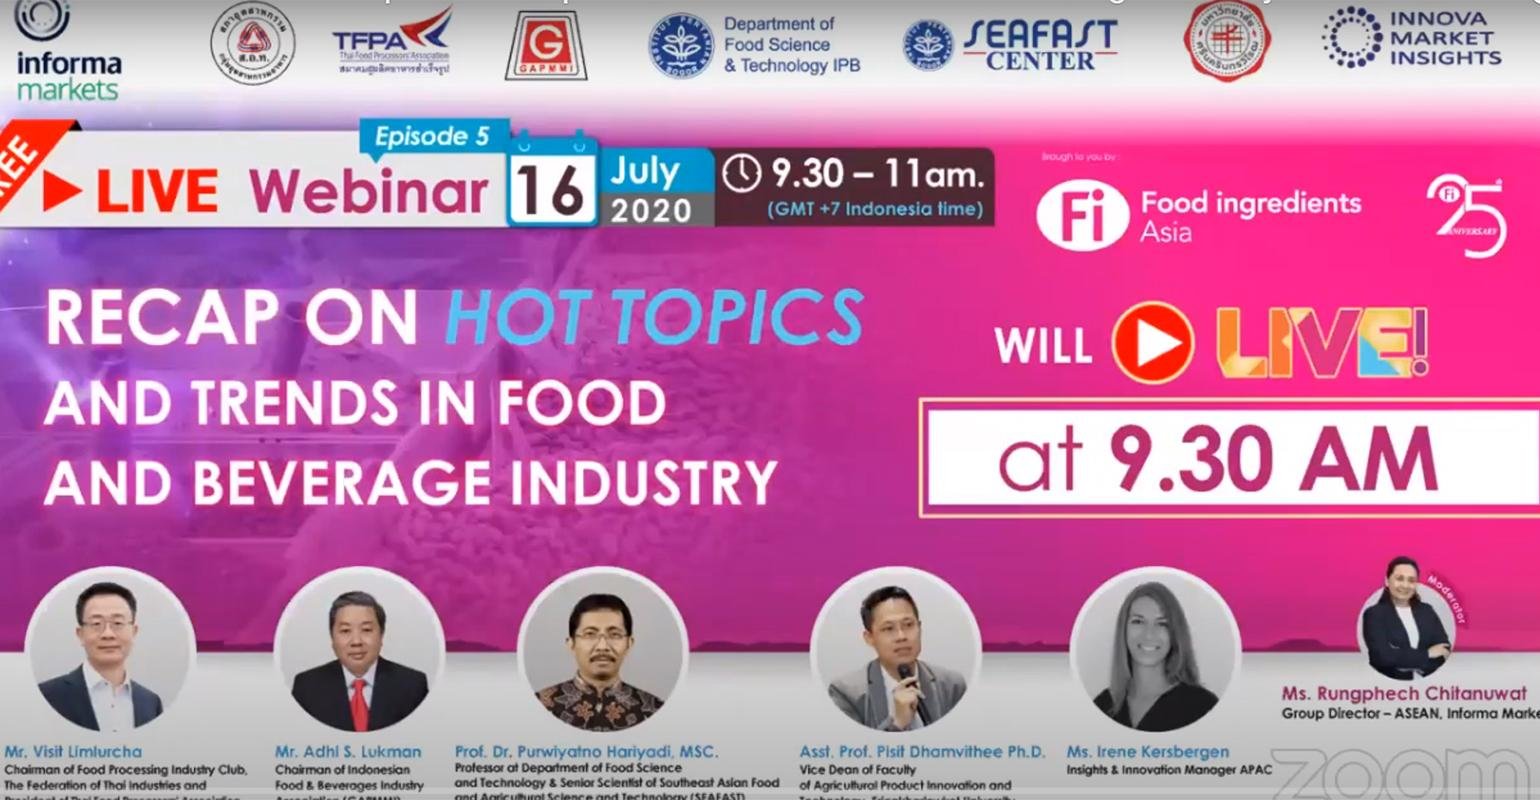 Recap-on-Hot-Topics-and-Trends-in-Food-and-Beverage-Industry.jpg